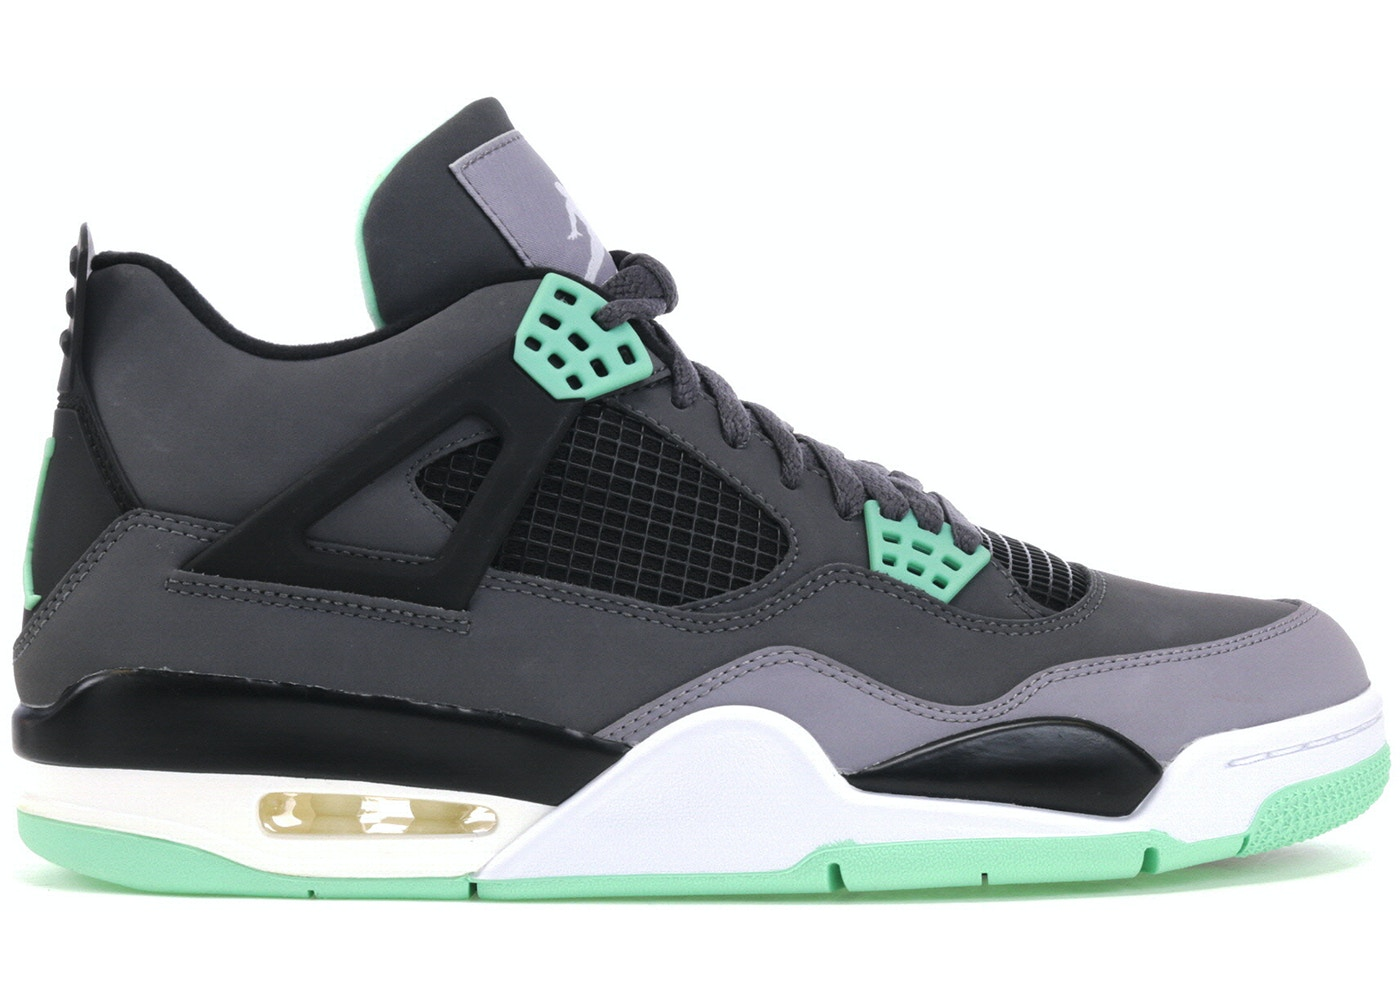 huge discount 81db0 42498 Jordan 4 Retro Green Glow - 308497-033